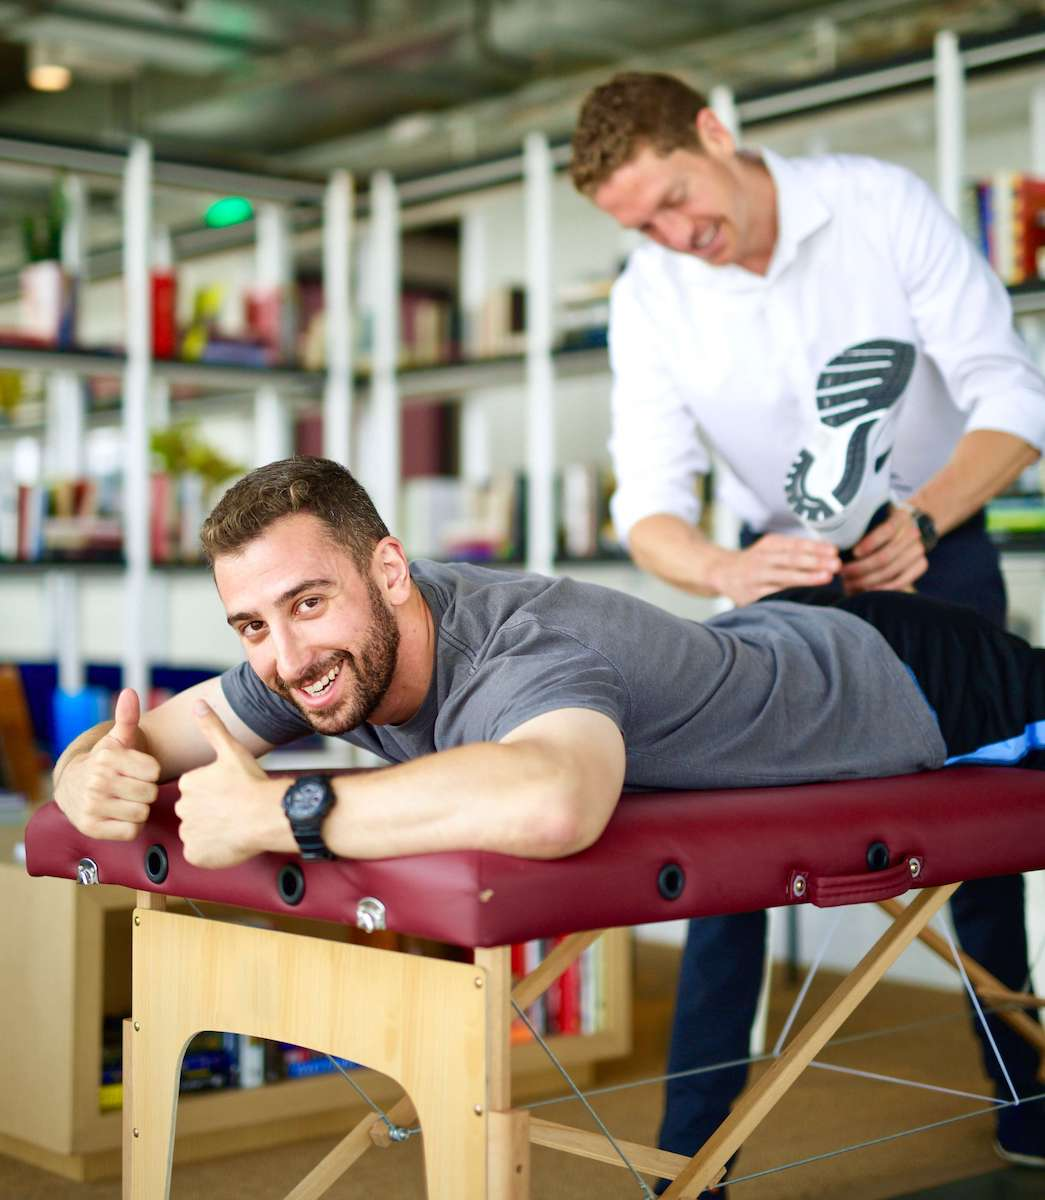 Physical therapist stretching man's quads in his workplace